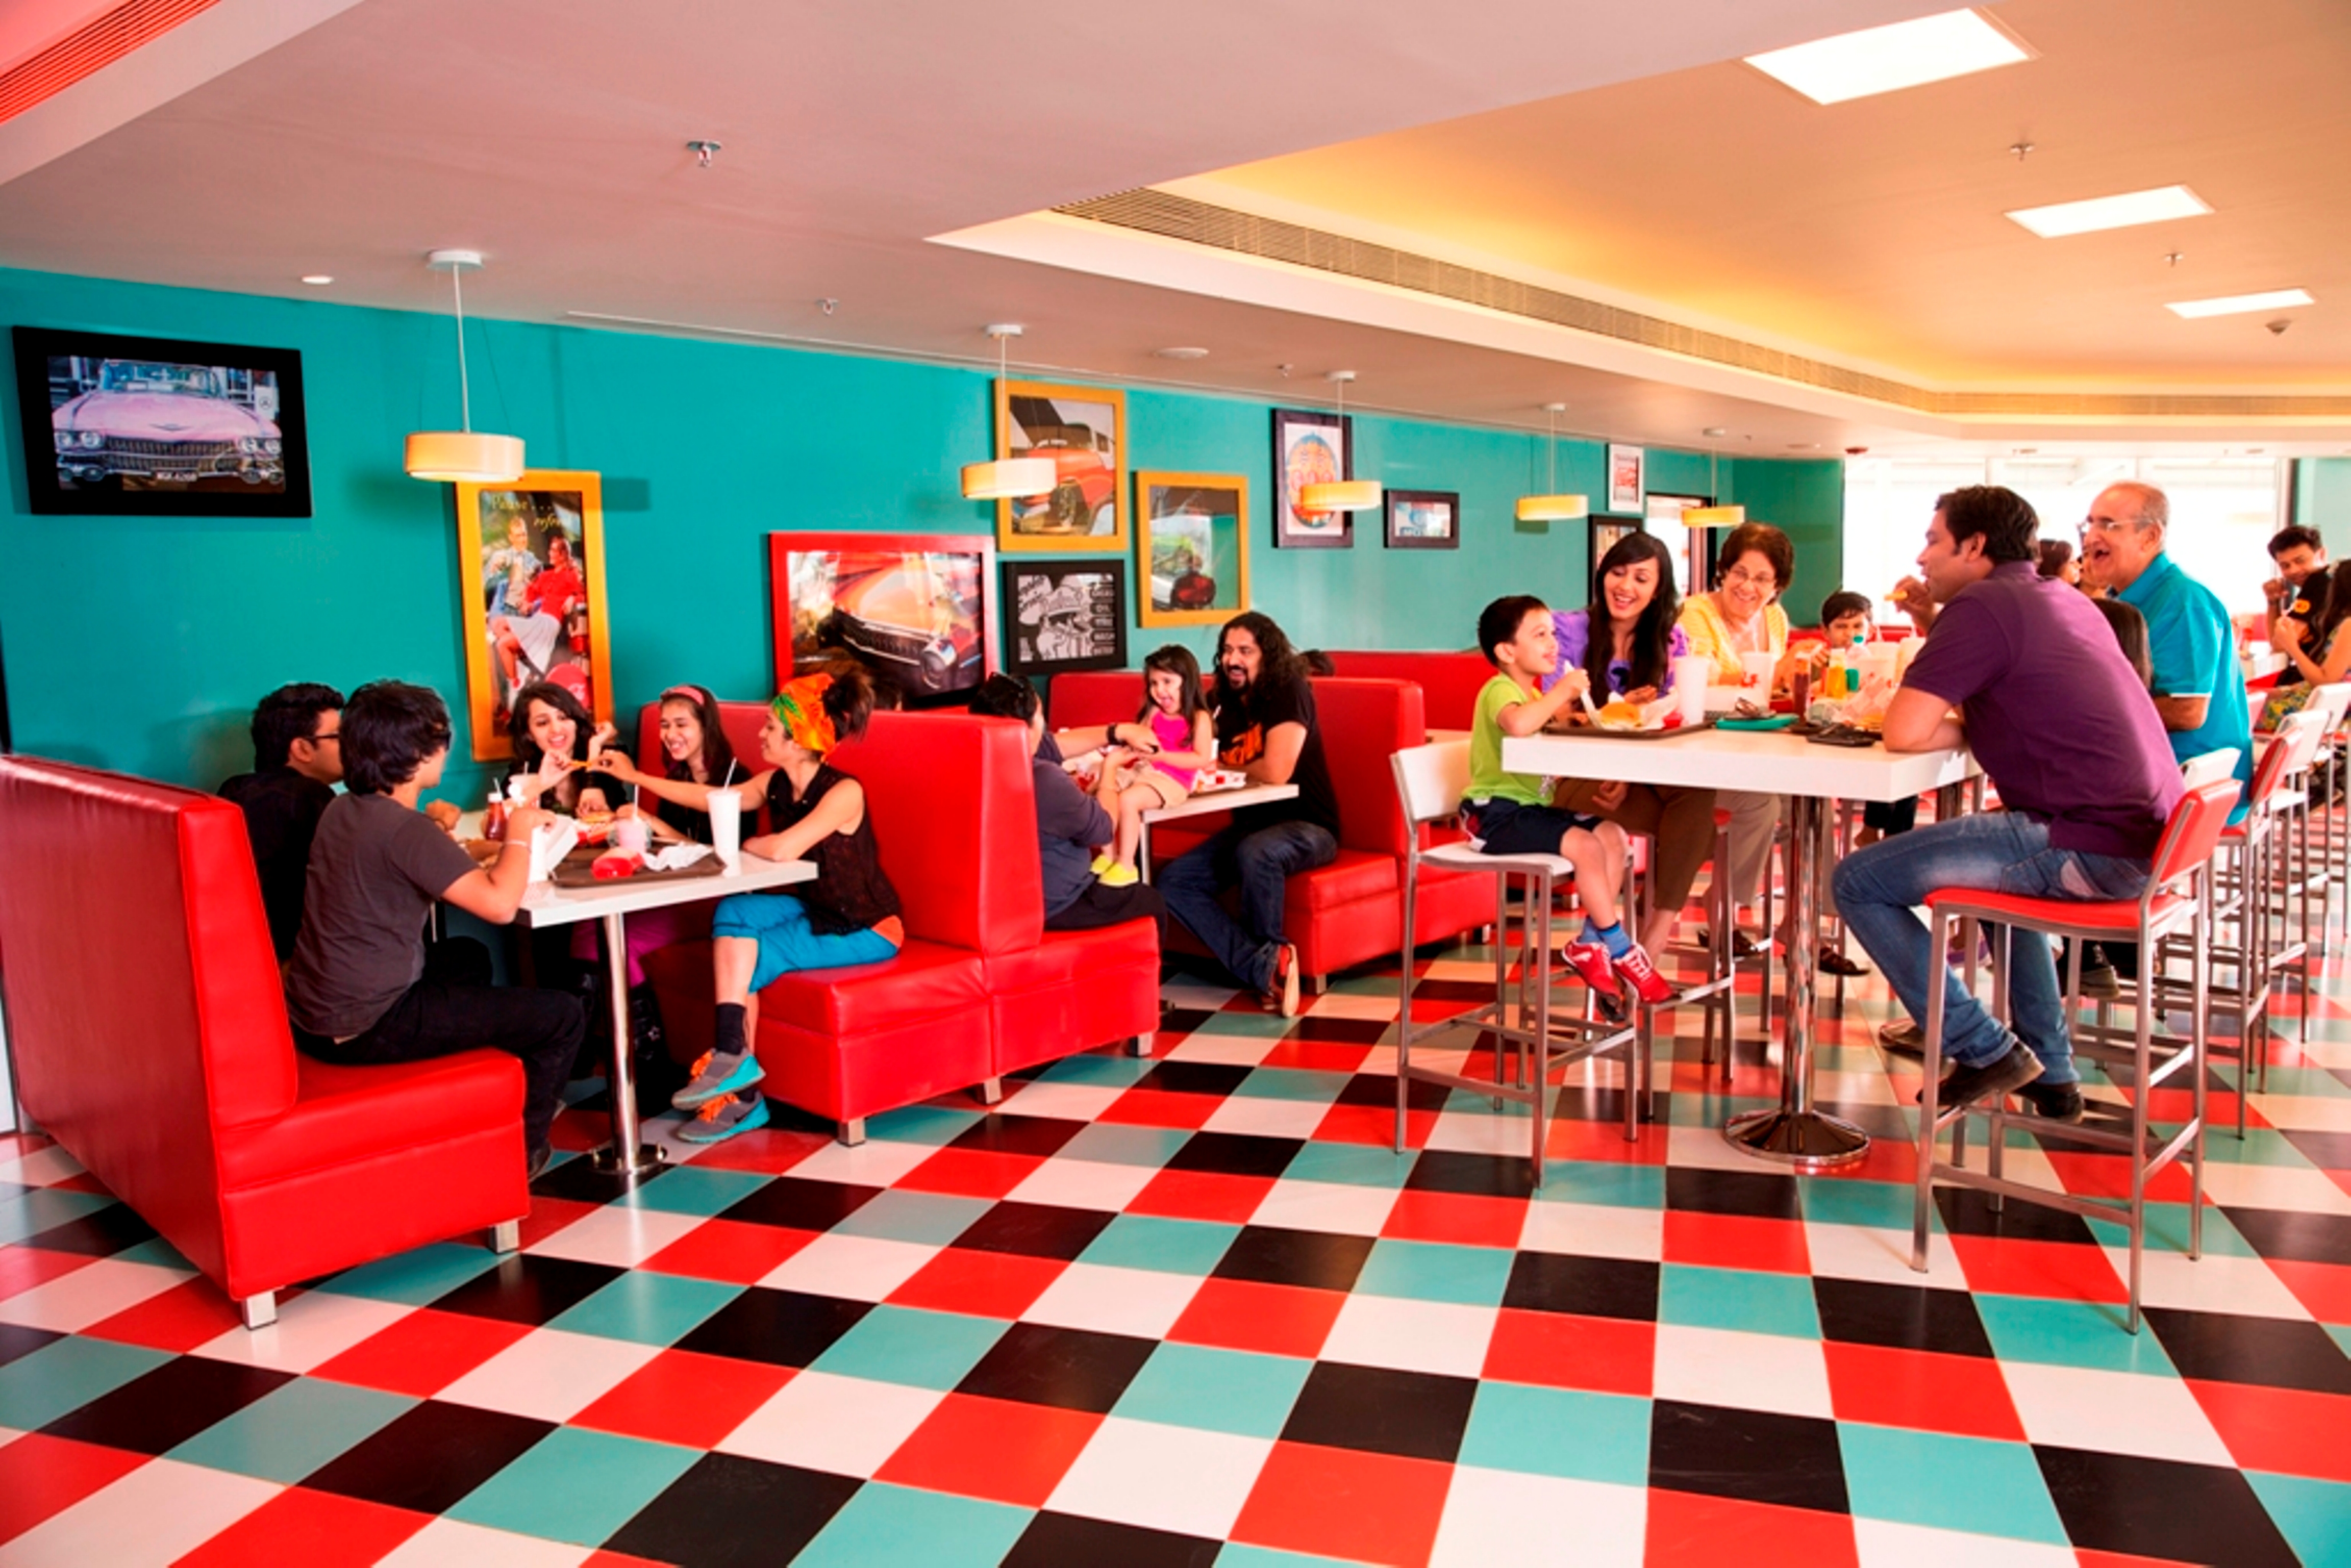 Decoration Restaurant Style Americain : Ready…steady…scream review of imagica fashionably foody